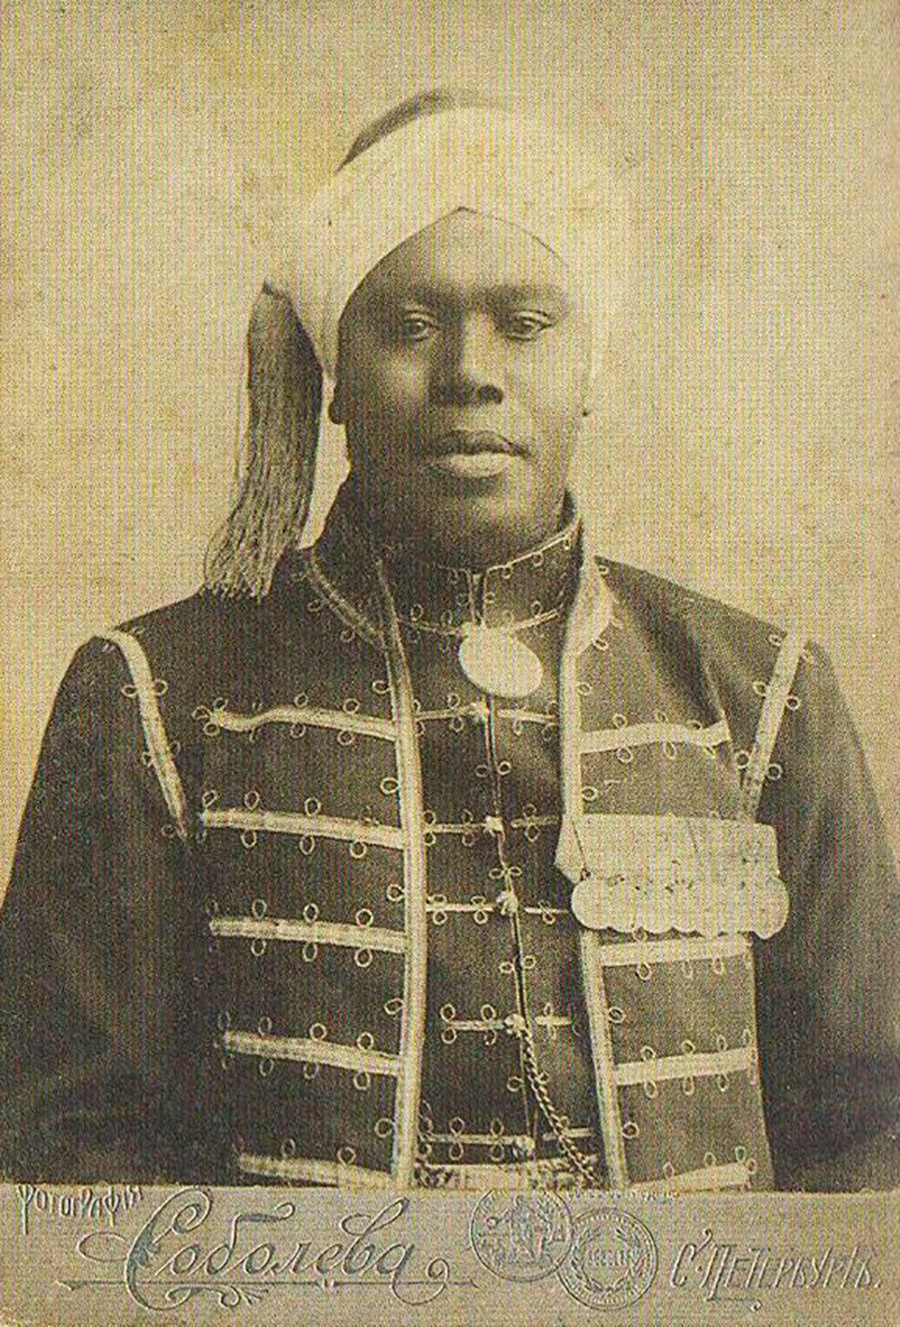 George Maria, an arap from Cape-Verde, who settled in Russia.